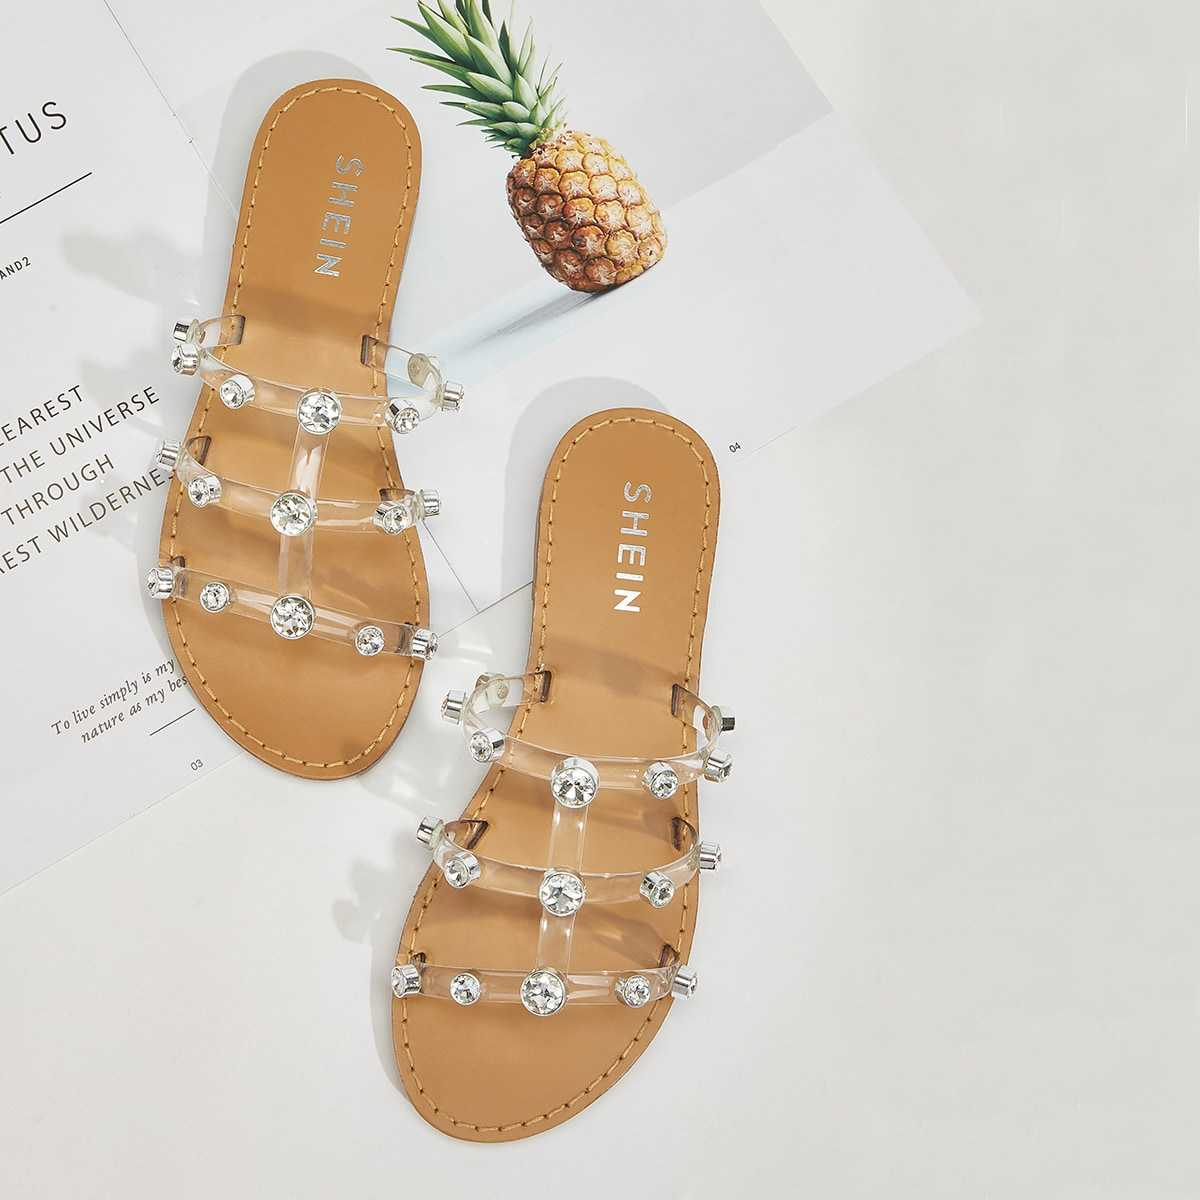 Rhinestone Decor Clear Strap Flat Slippers in Brown by ROMWE on GOOFASH